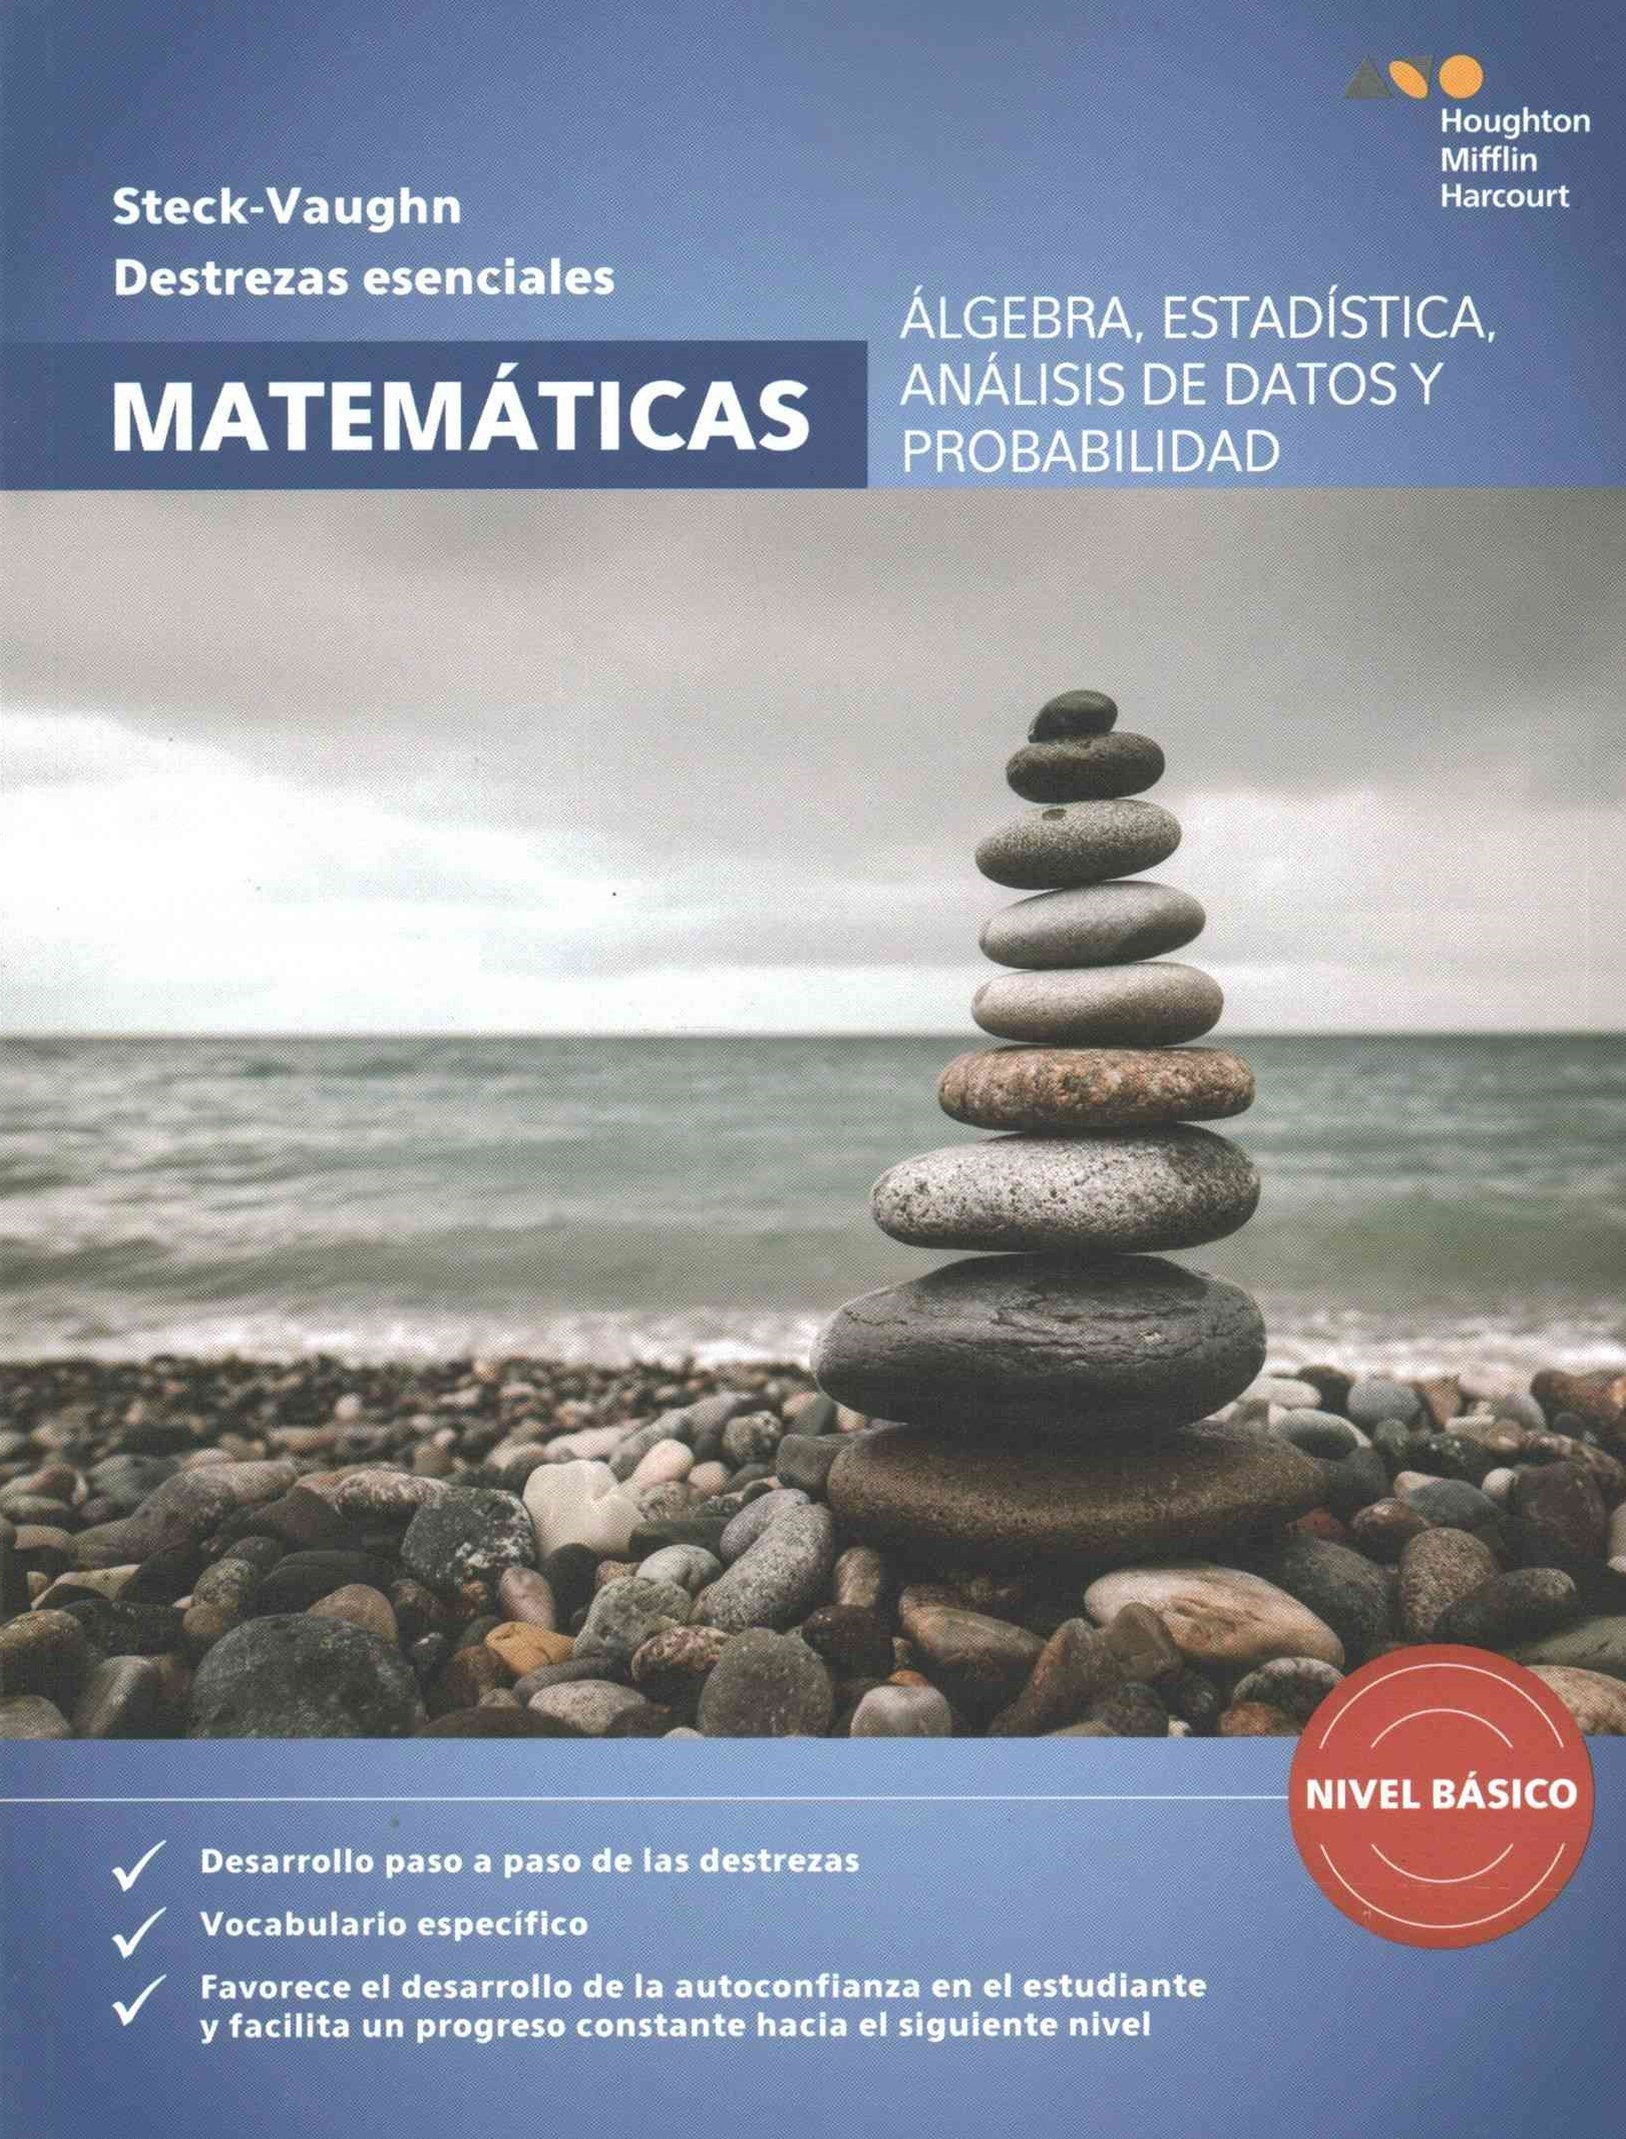 Algebra, estadistica, analisis de datos y probabilidad, nivel basico / Algebra, Statistics, Data Analysis, and Probability Beginning